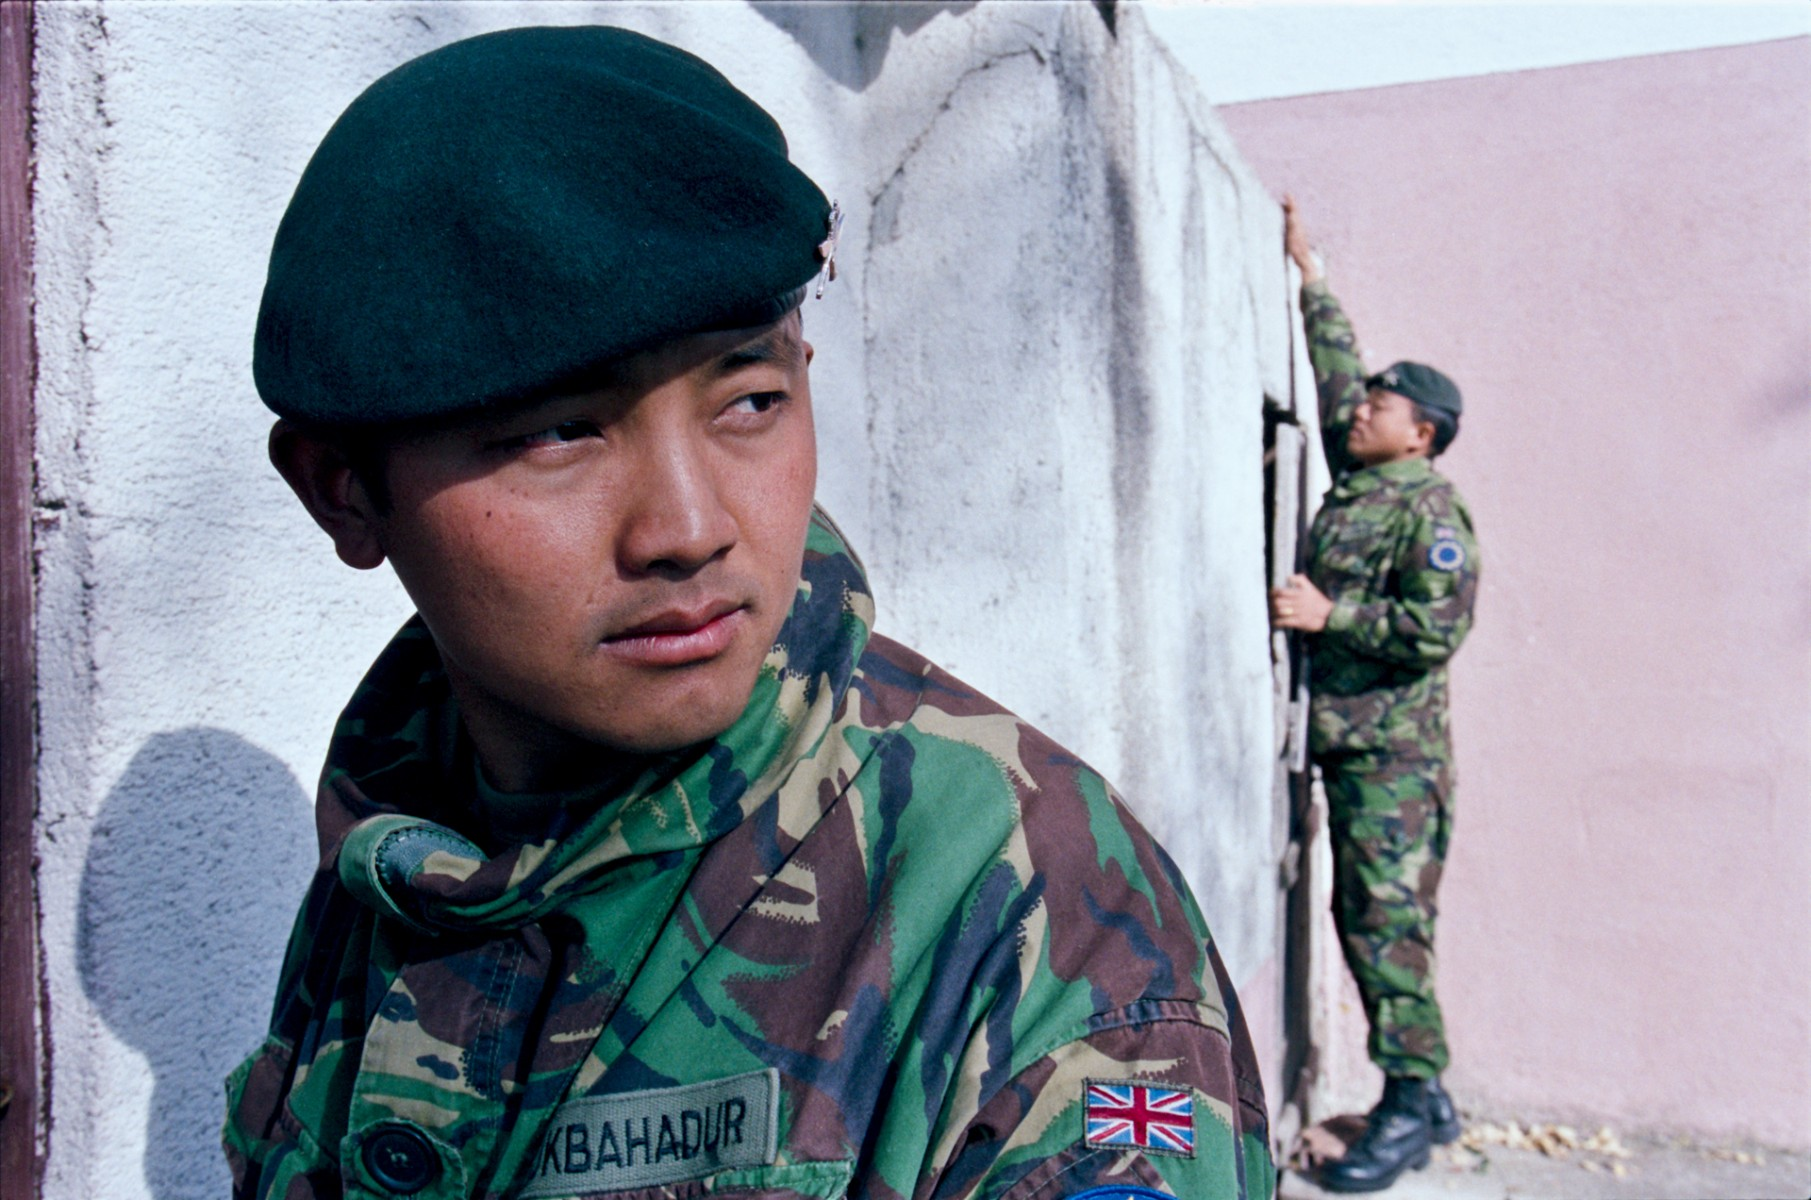 Gurkhas search a building, Bosnia